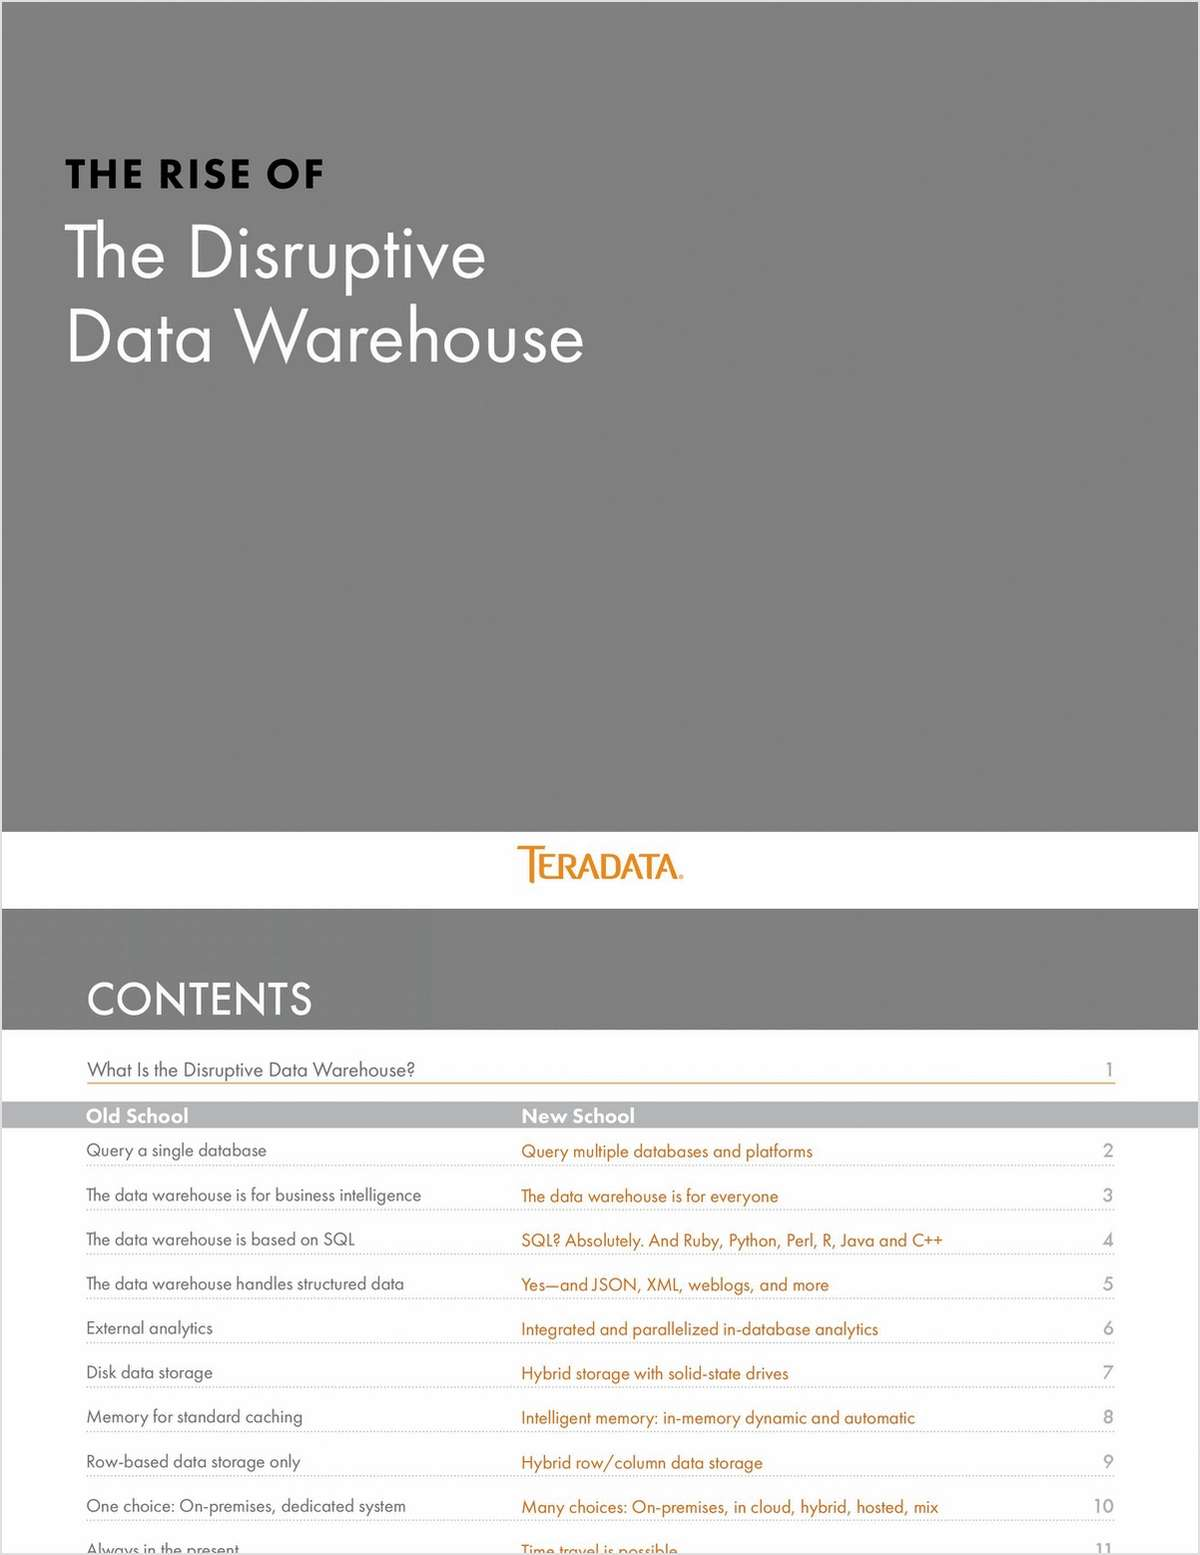 The Rise of the Disruptive Data Warehouse